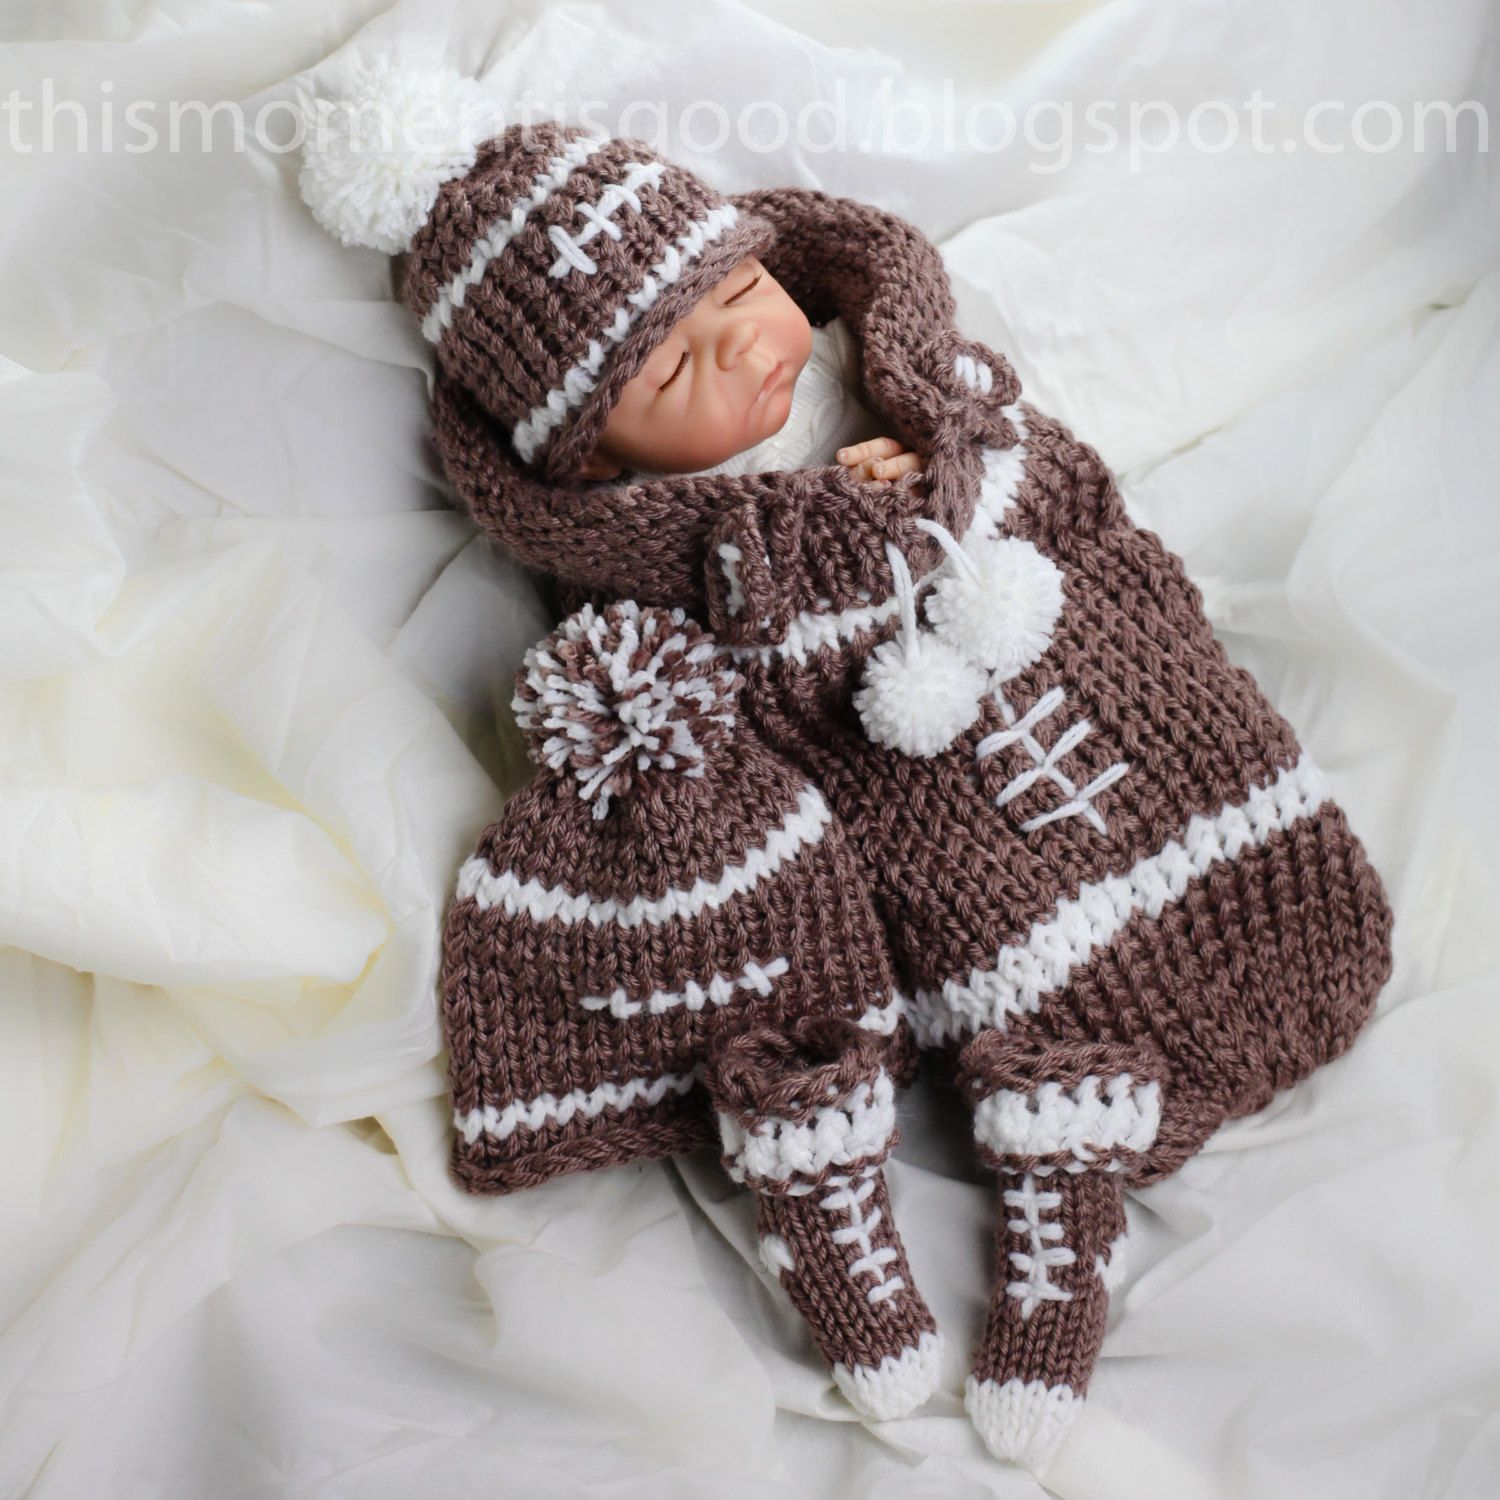 Loom knit newborn cocoon pattern loom knit hat pattern loom knit loom knit newborn cocoon pattern loom knit hat pattern loom knit booties pattern football themed cocoon hat booties pattern pdf download bankloansurffo Choice Image